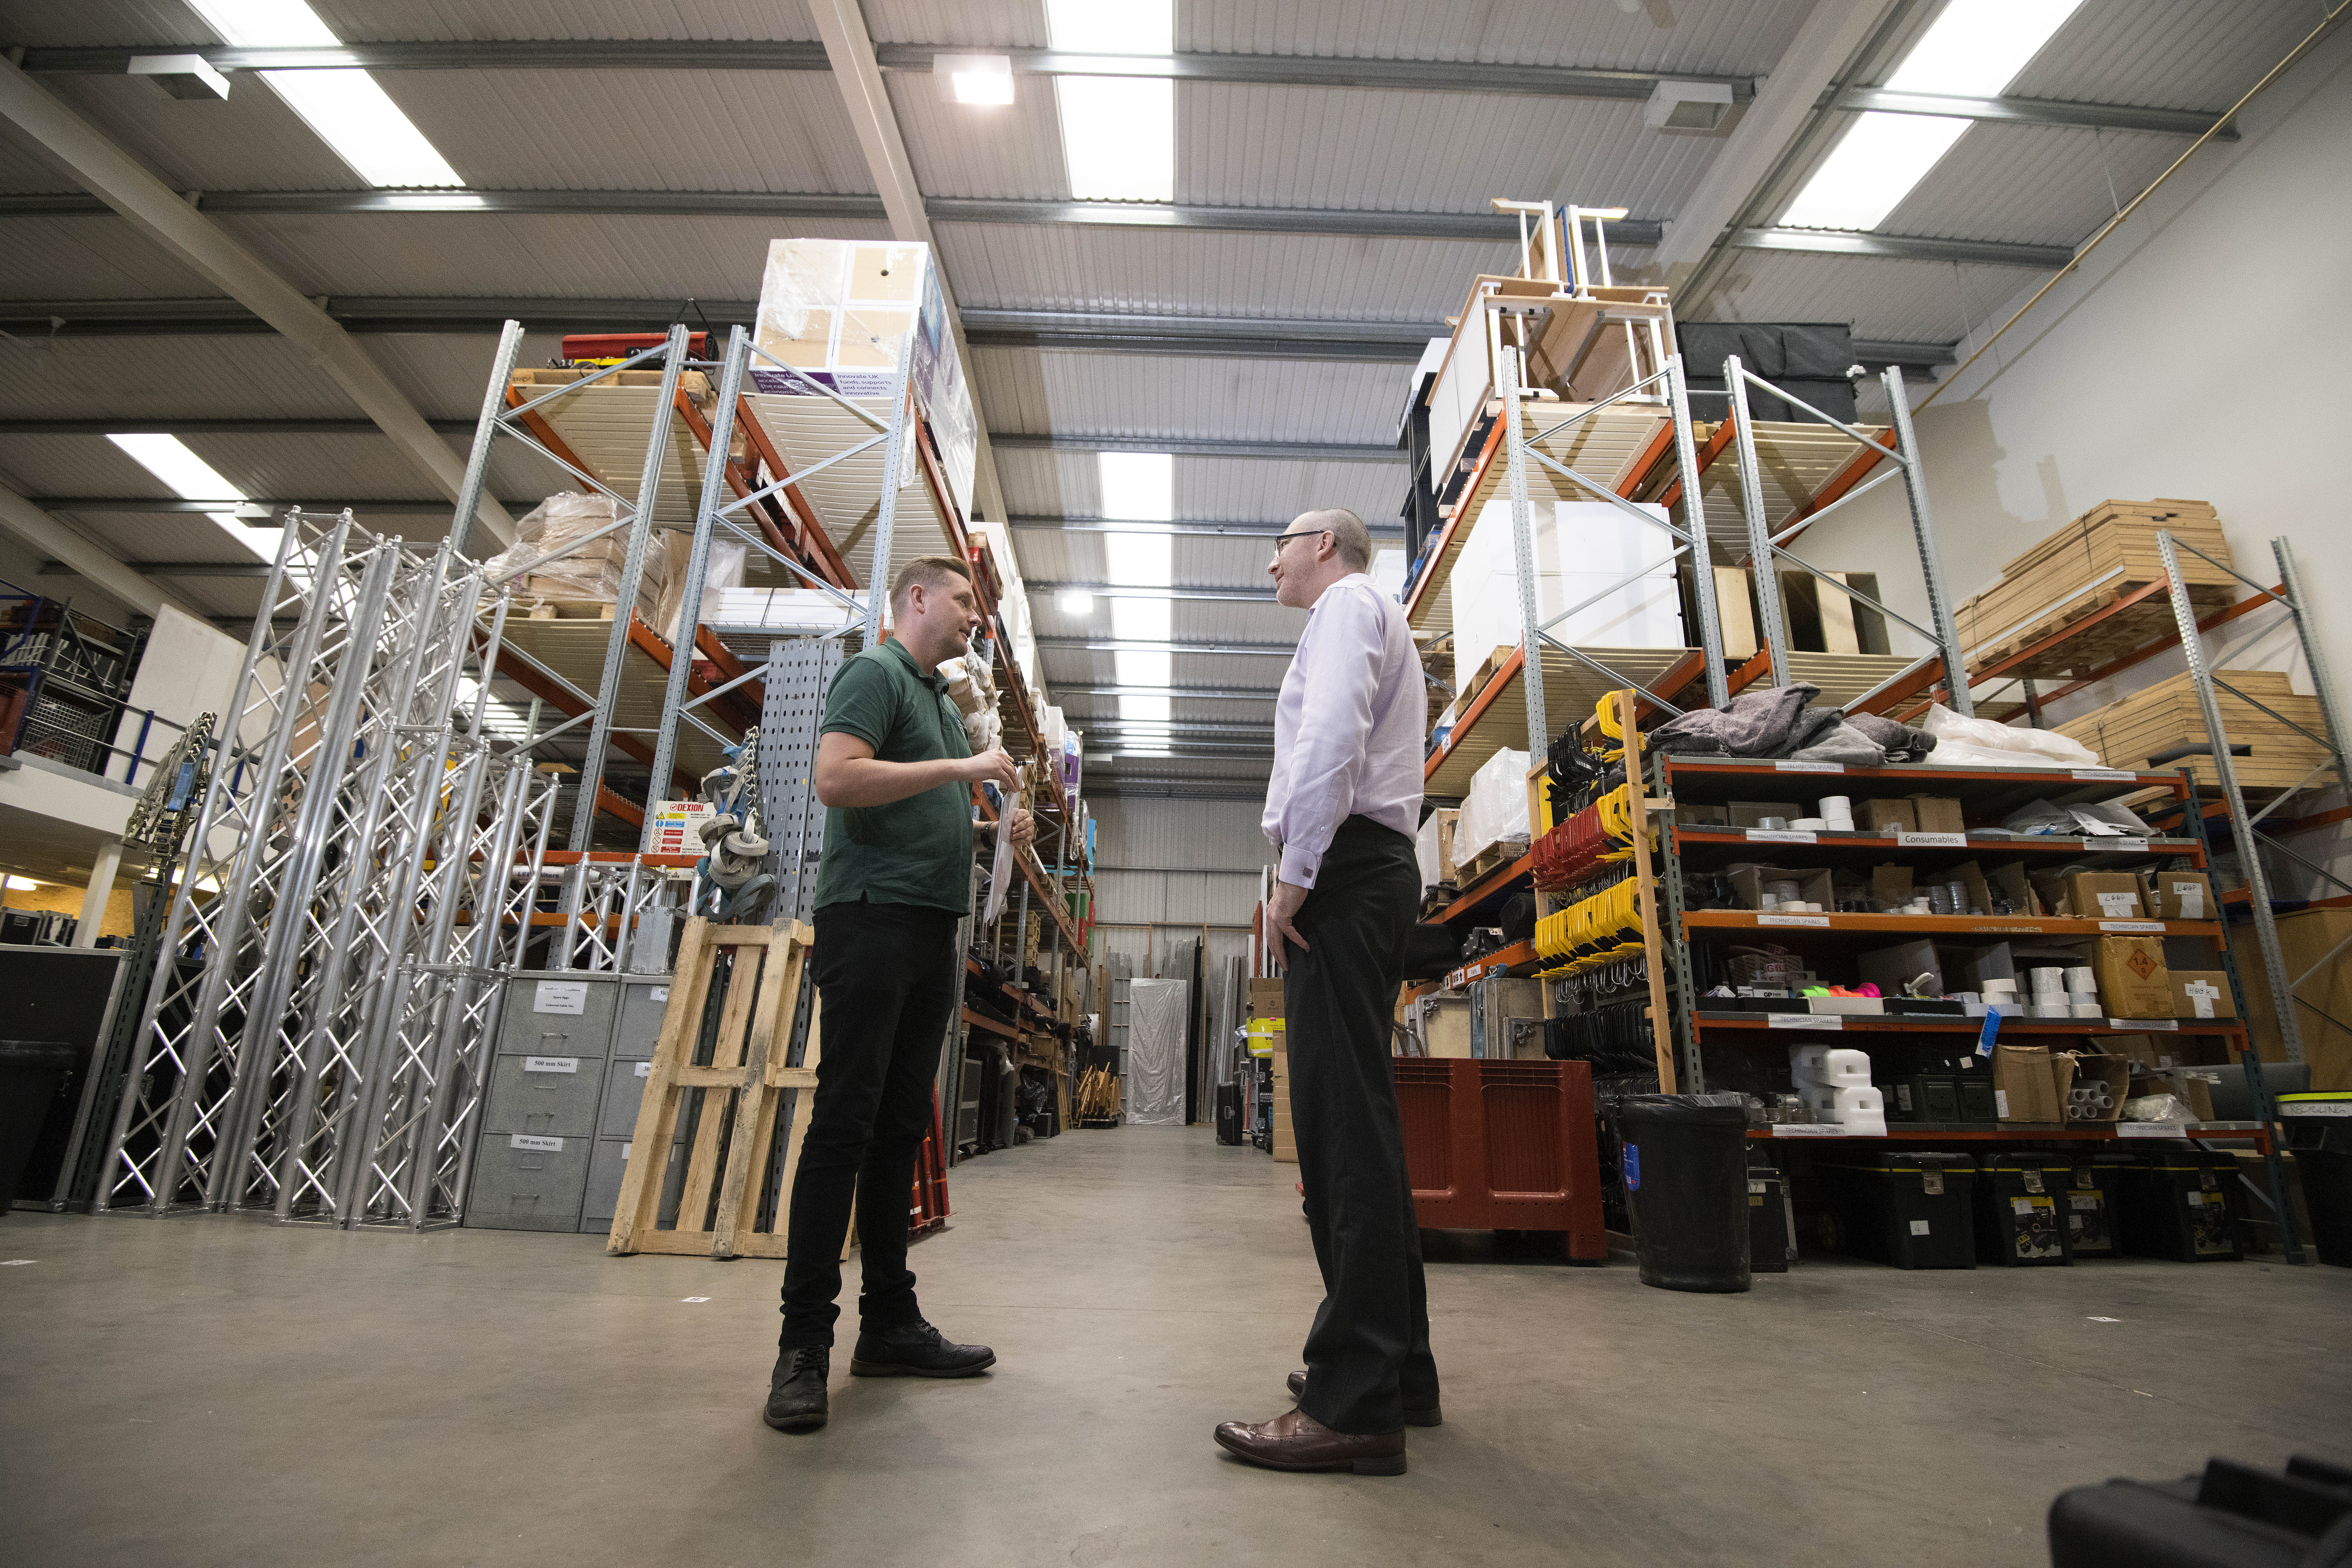 Leyland firm exhibits tangible savings thanks to MaCaW